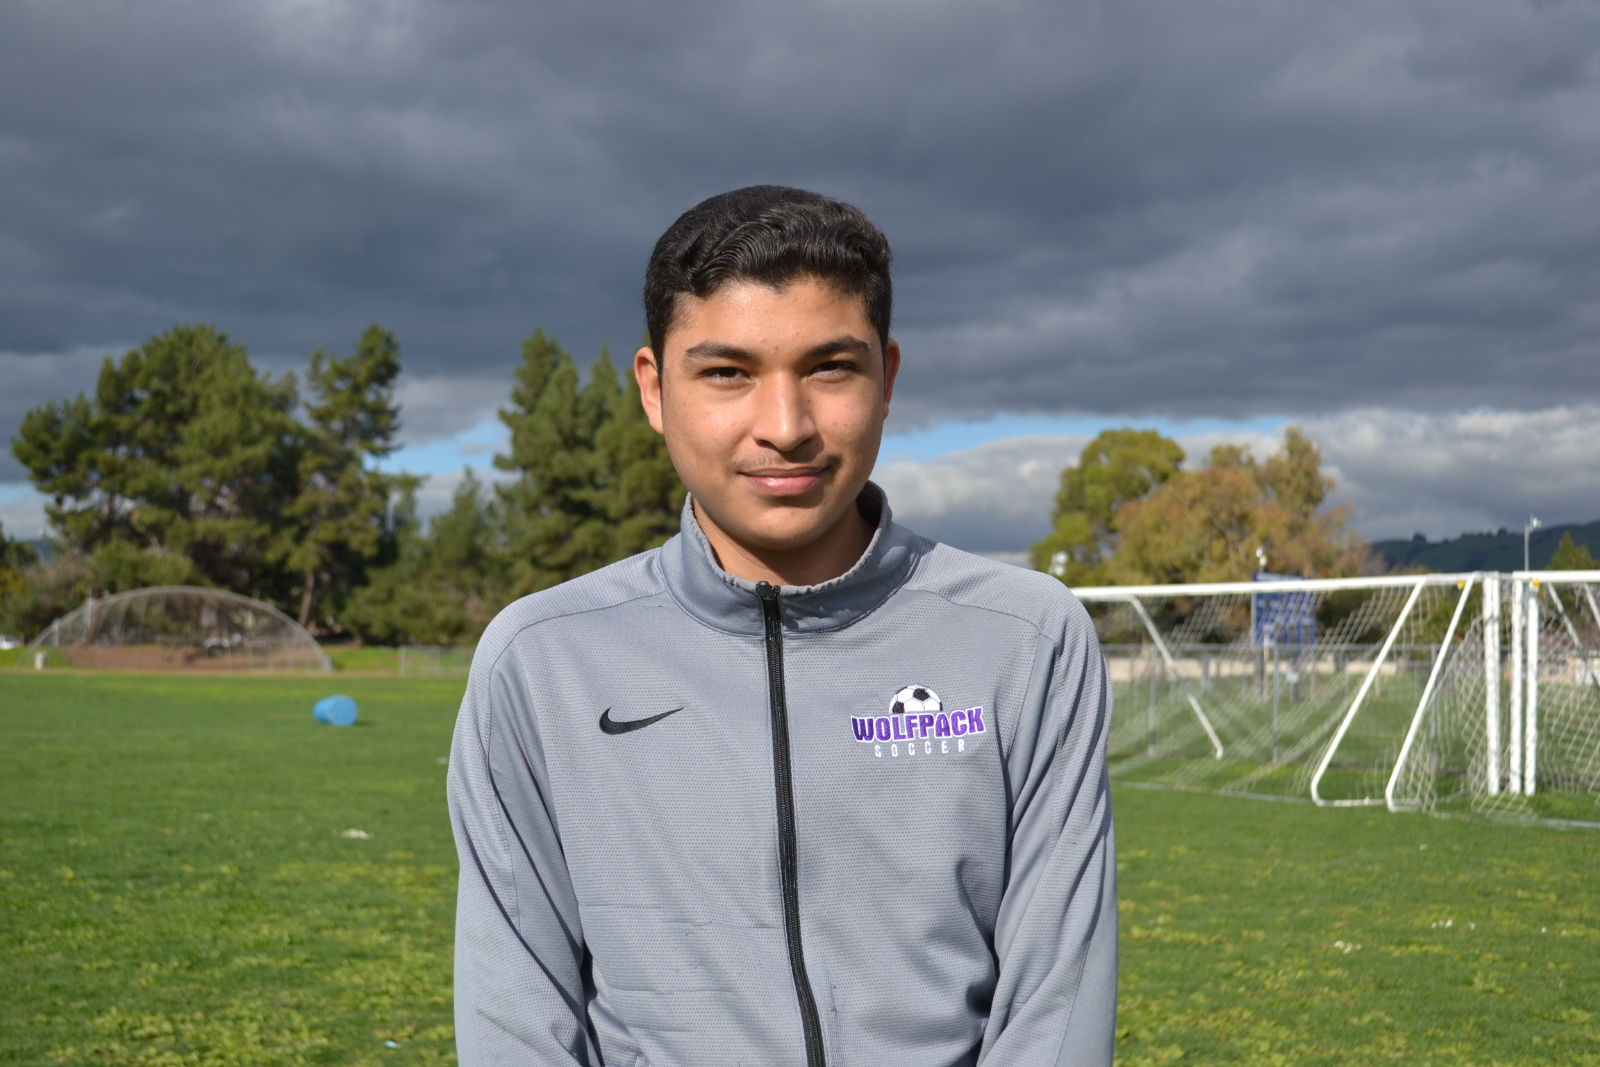 Prep2Prep Names Eduardo Yanez to the All-CCS Honorable Mentions List for 2nd Consecutive Year